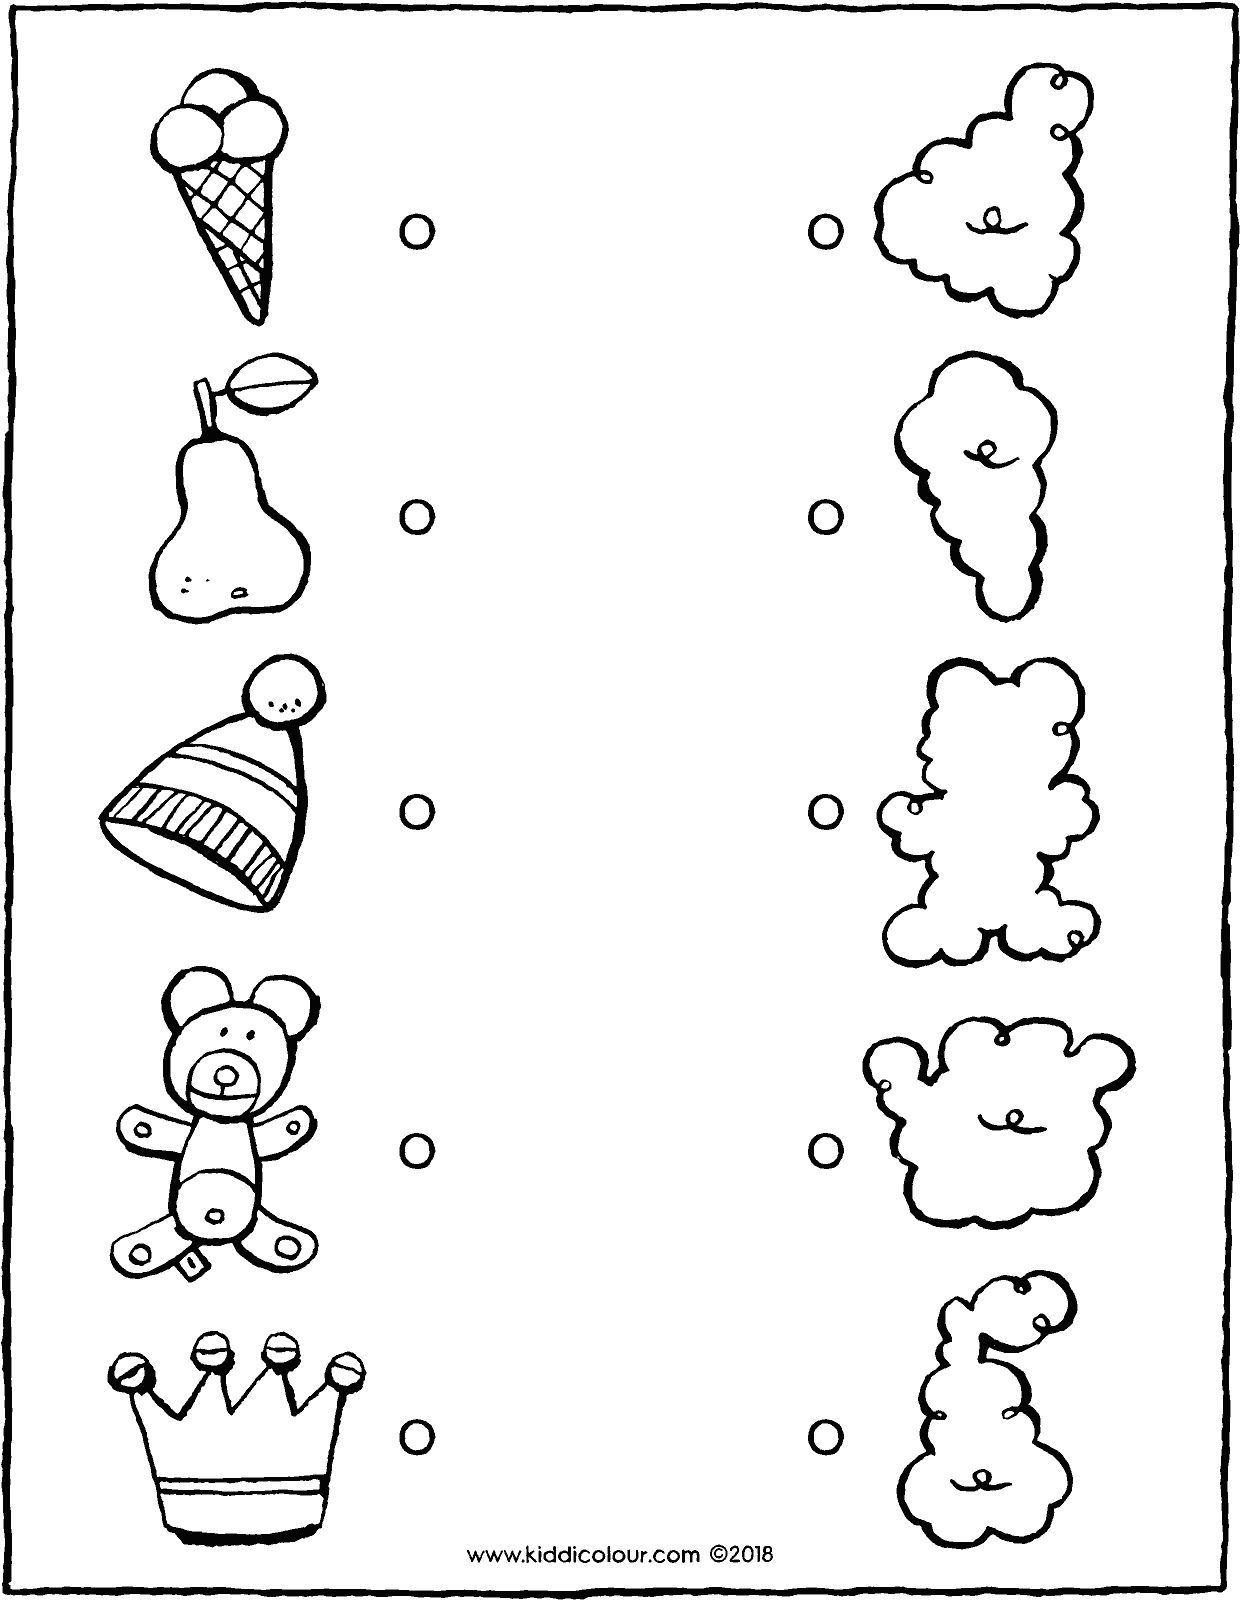 join the objects to the correct clouds colouring page drawing picture 01V